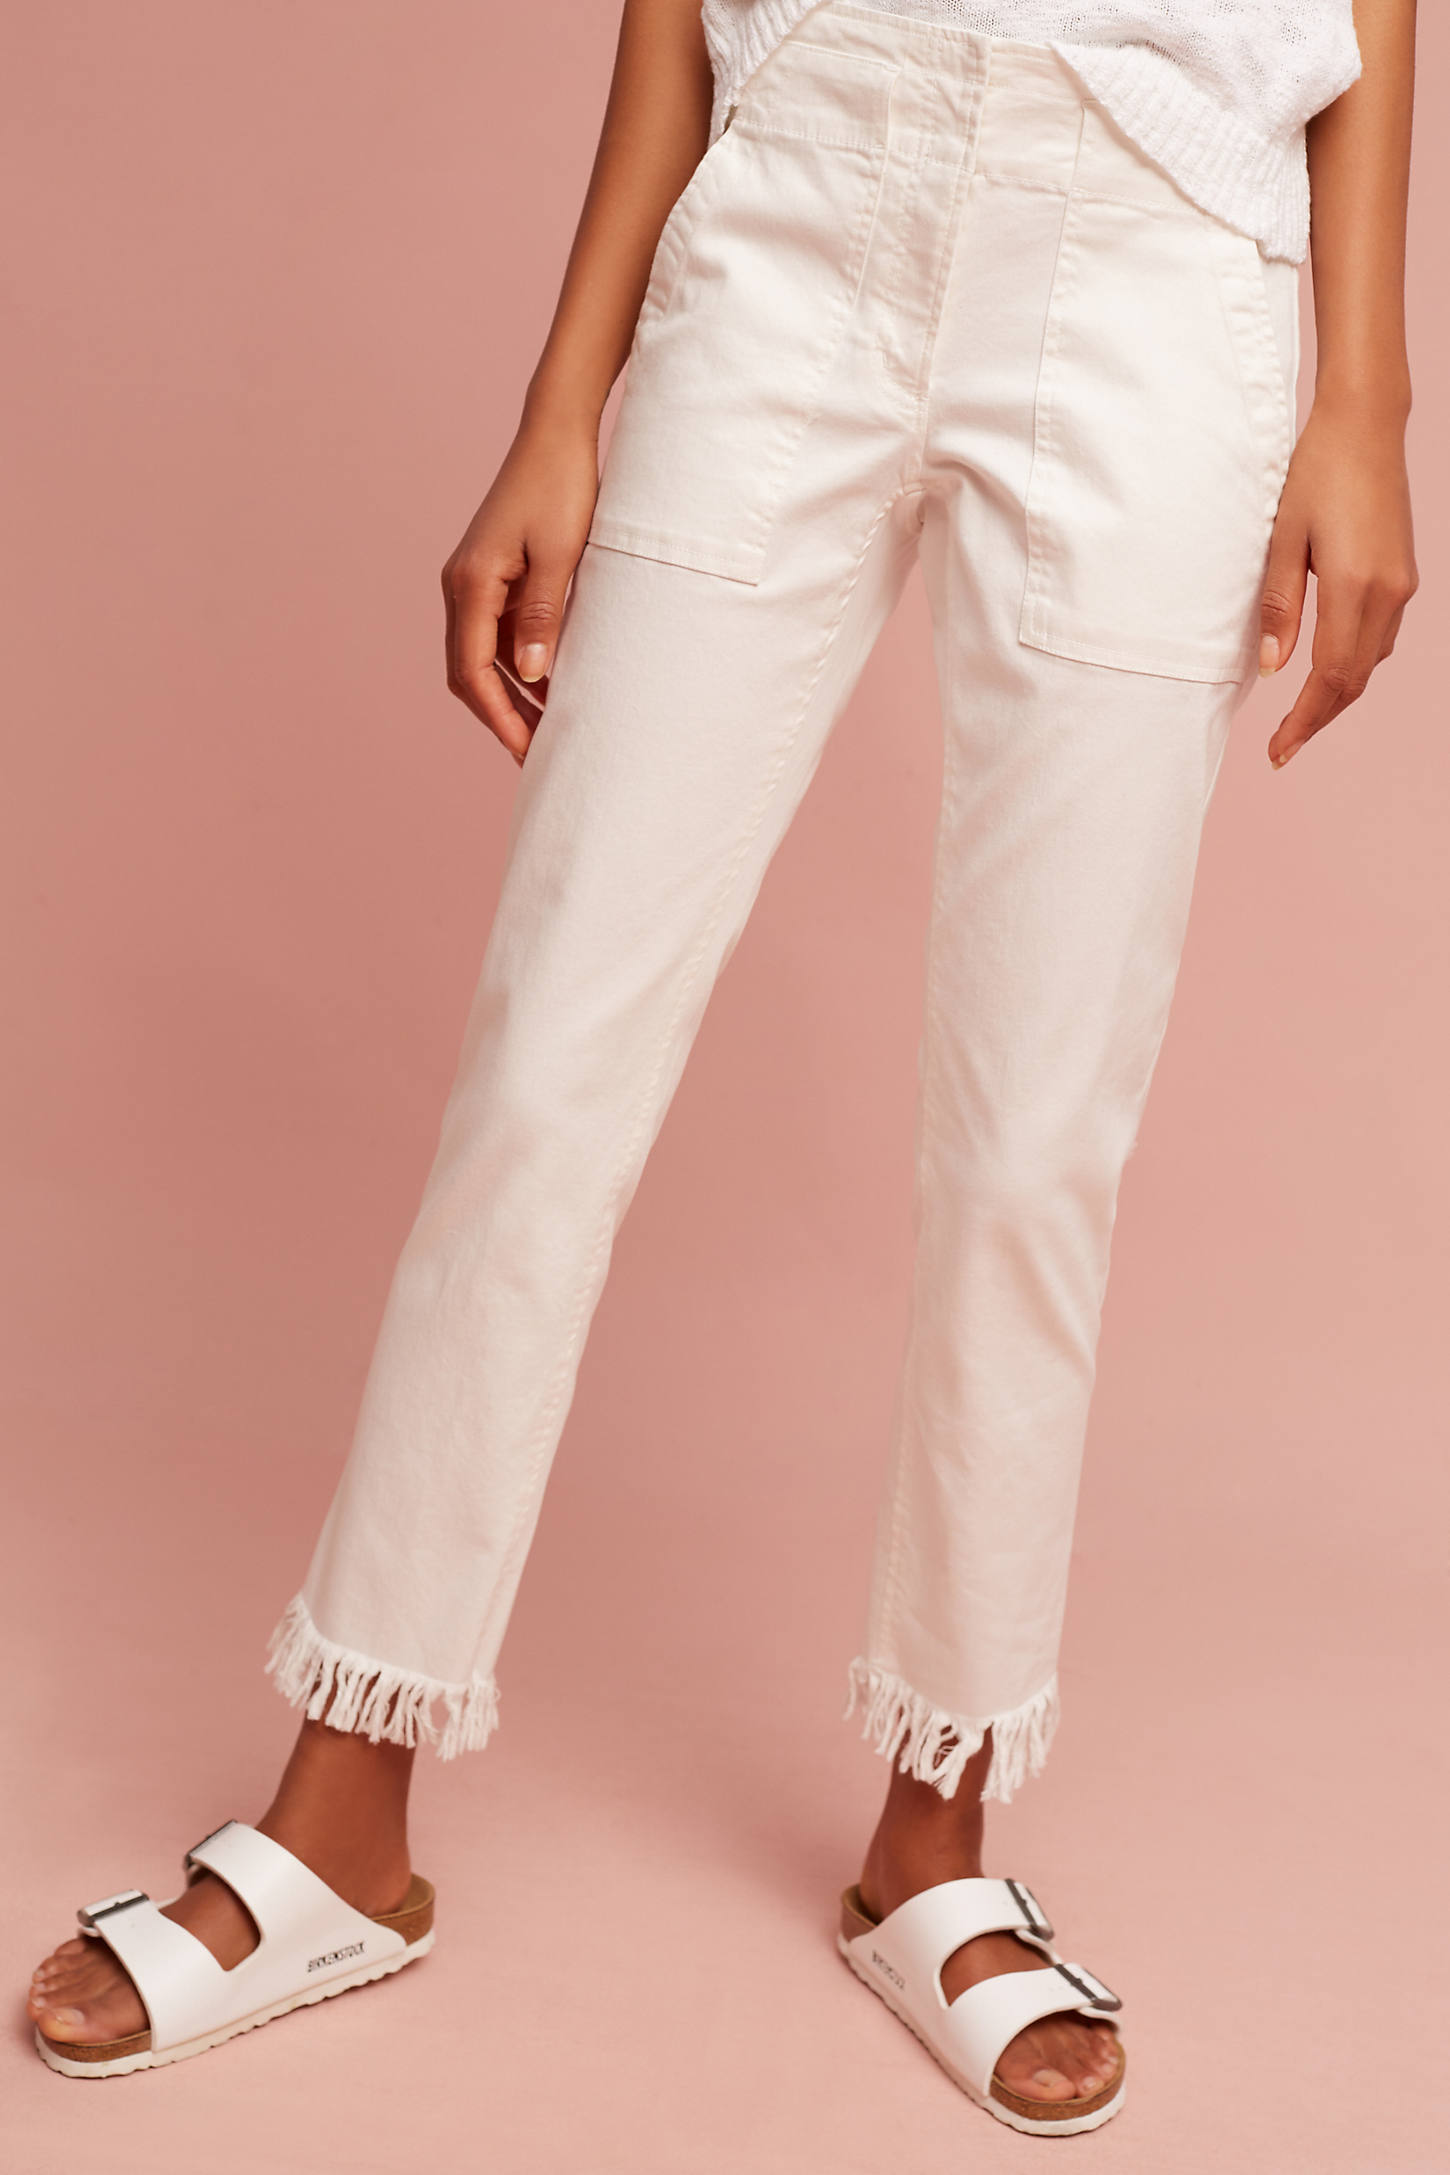 Tailored & Frayed Pants